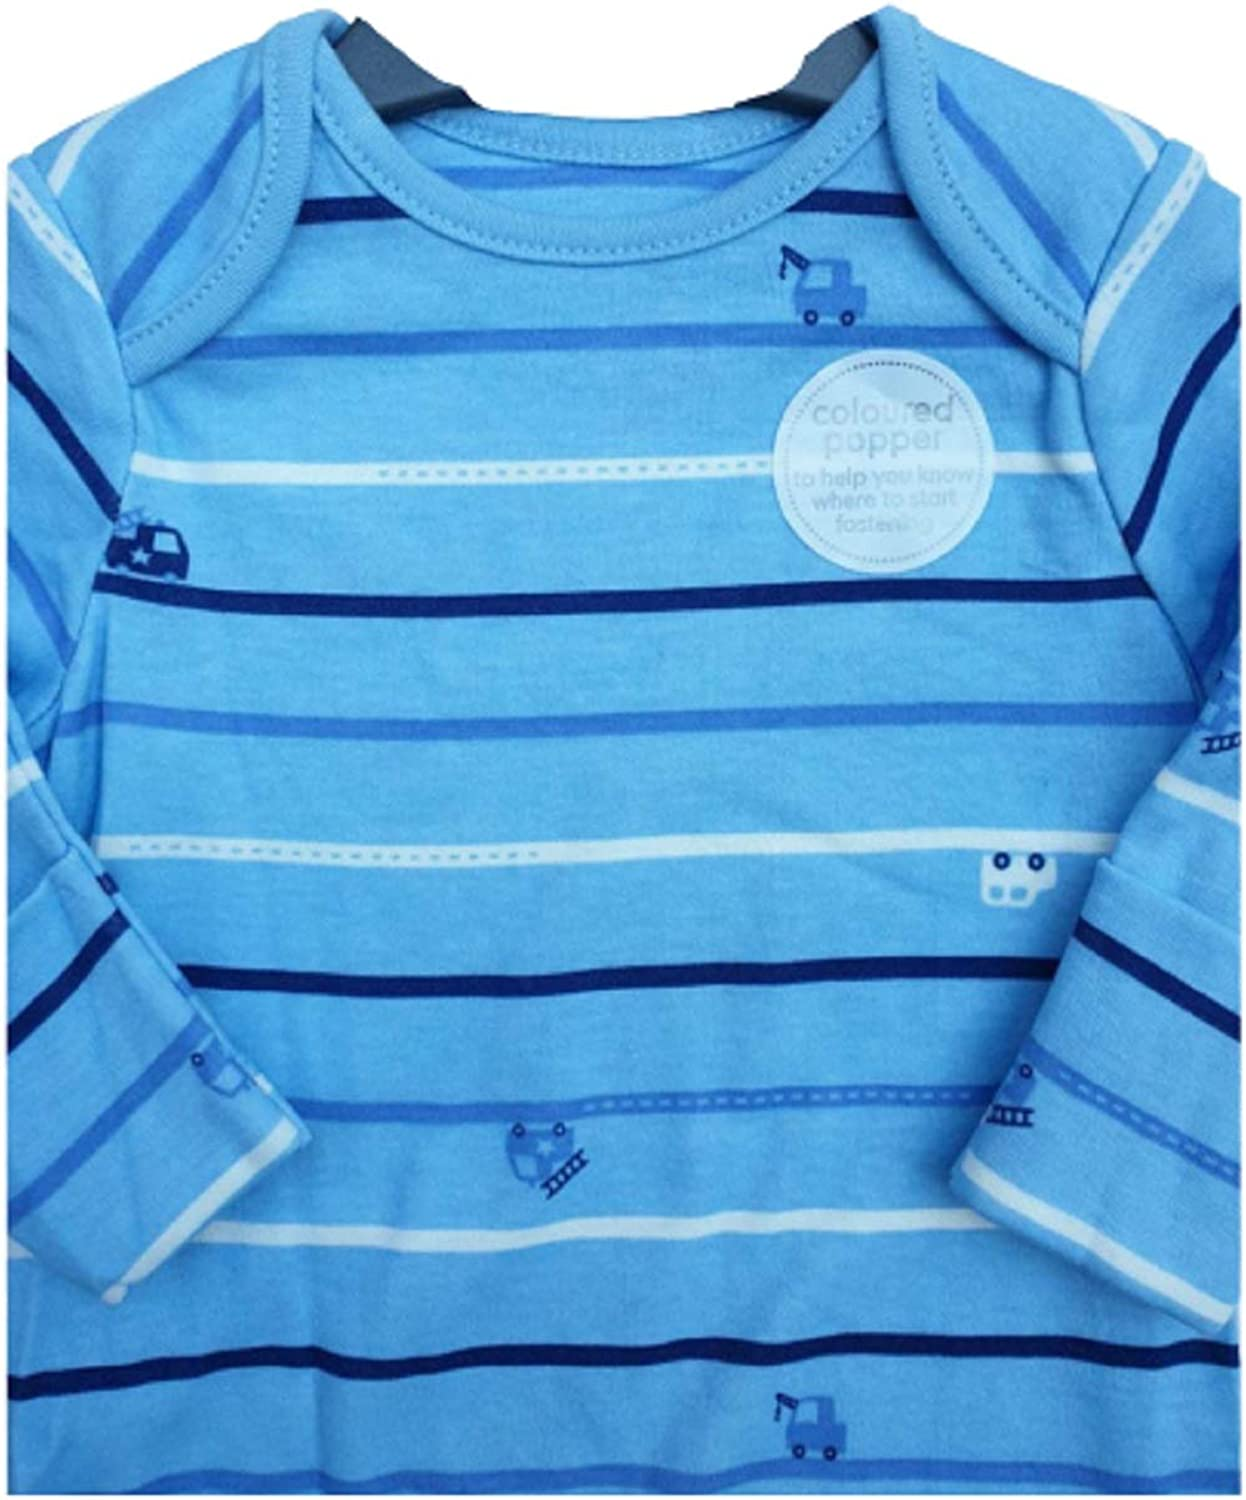 Ex Chain-store New Babygrow Poppers All in One Mothercare Blue Striped Baby Grow Sleepsuit Cotton Unisex